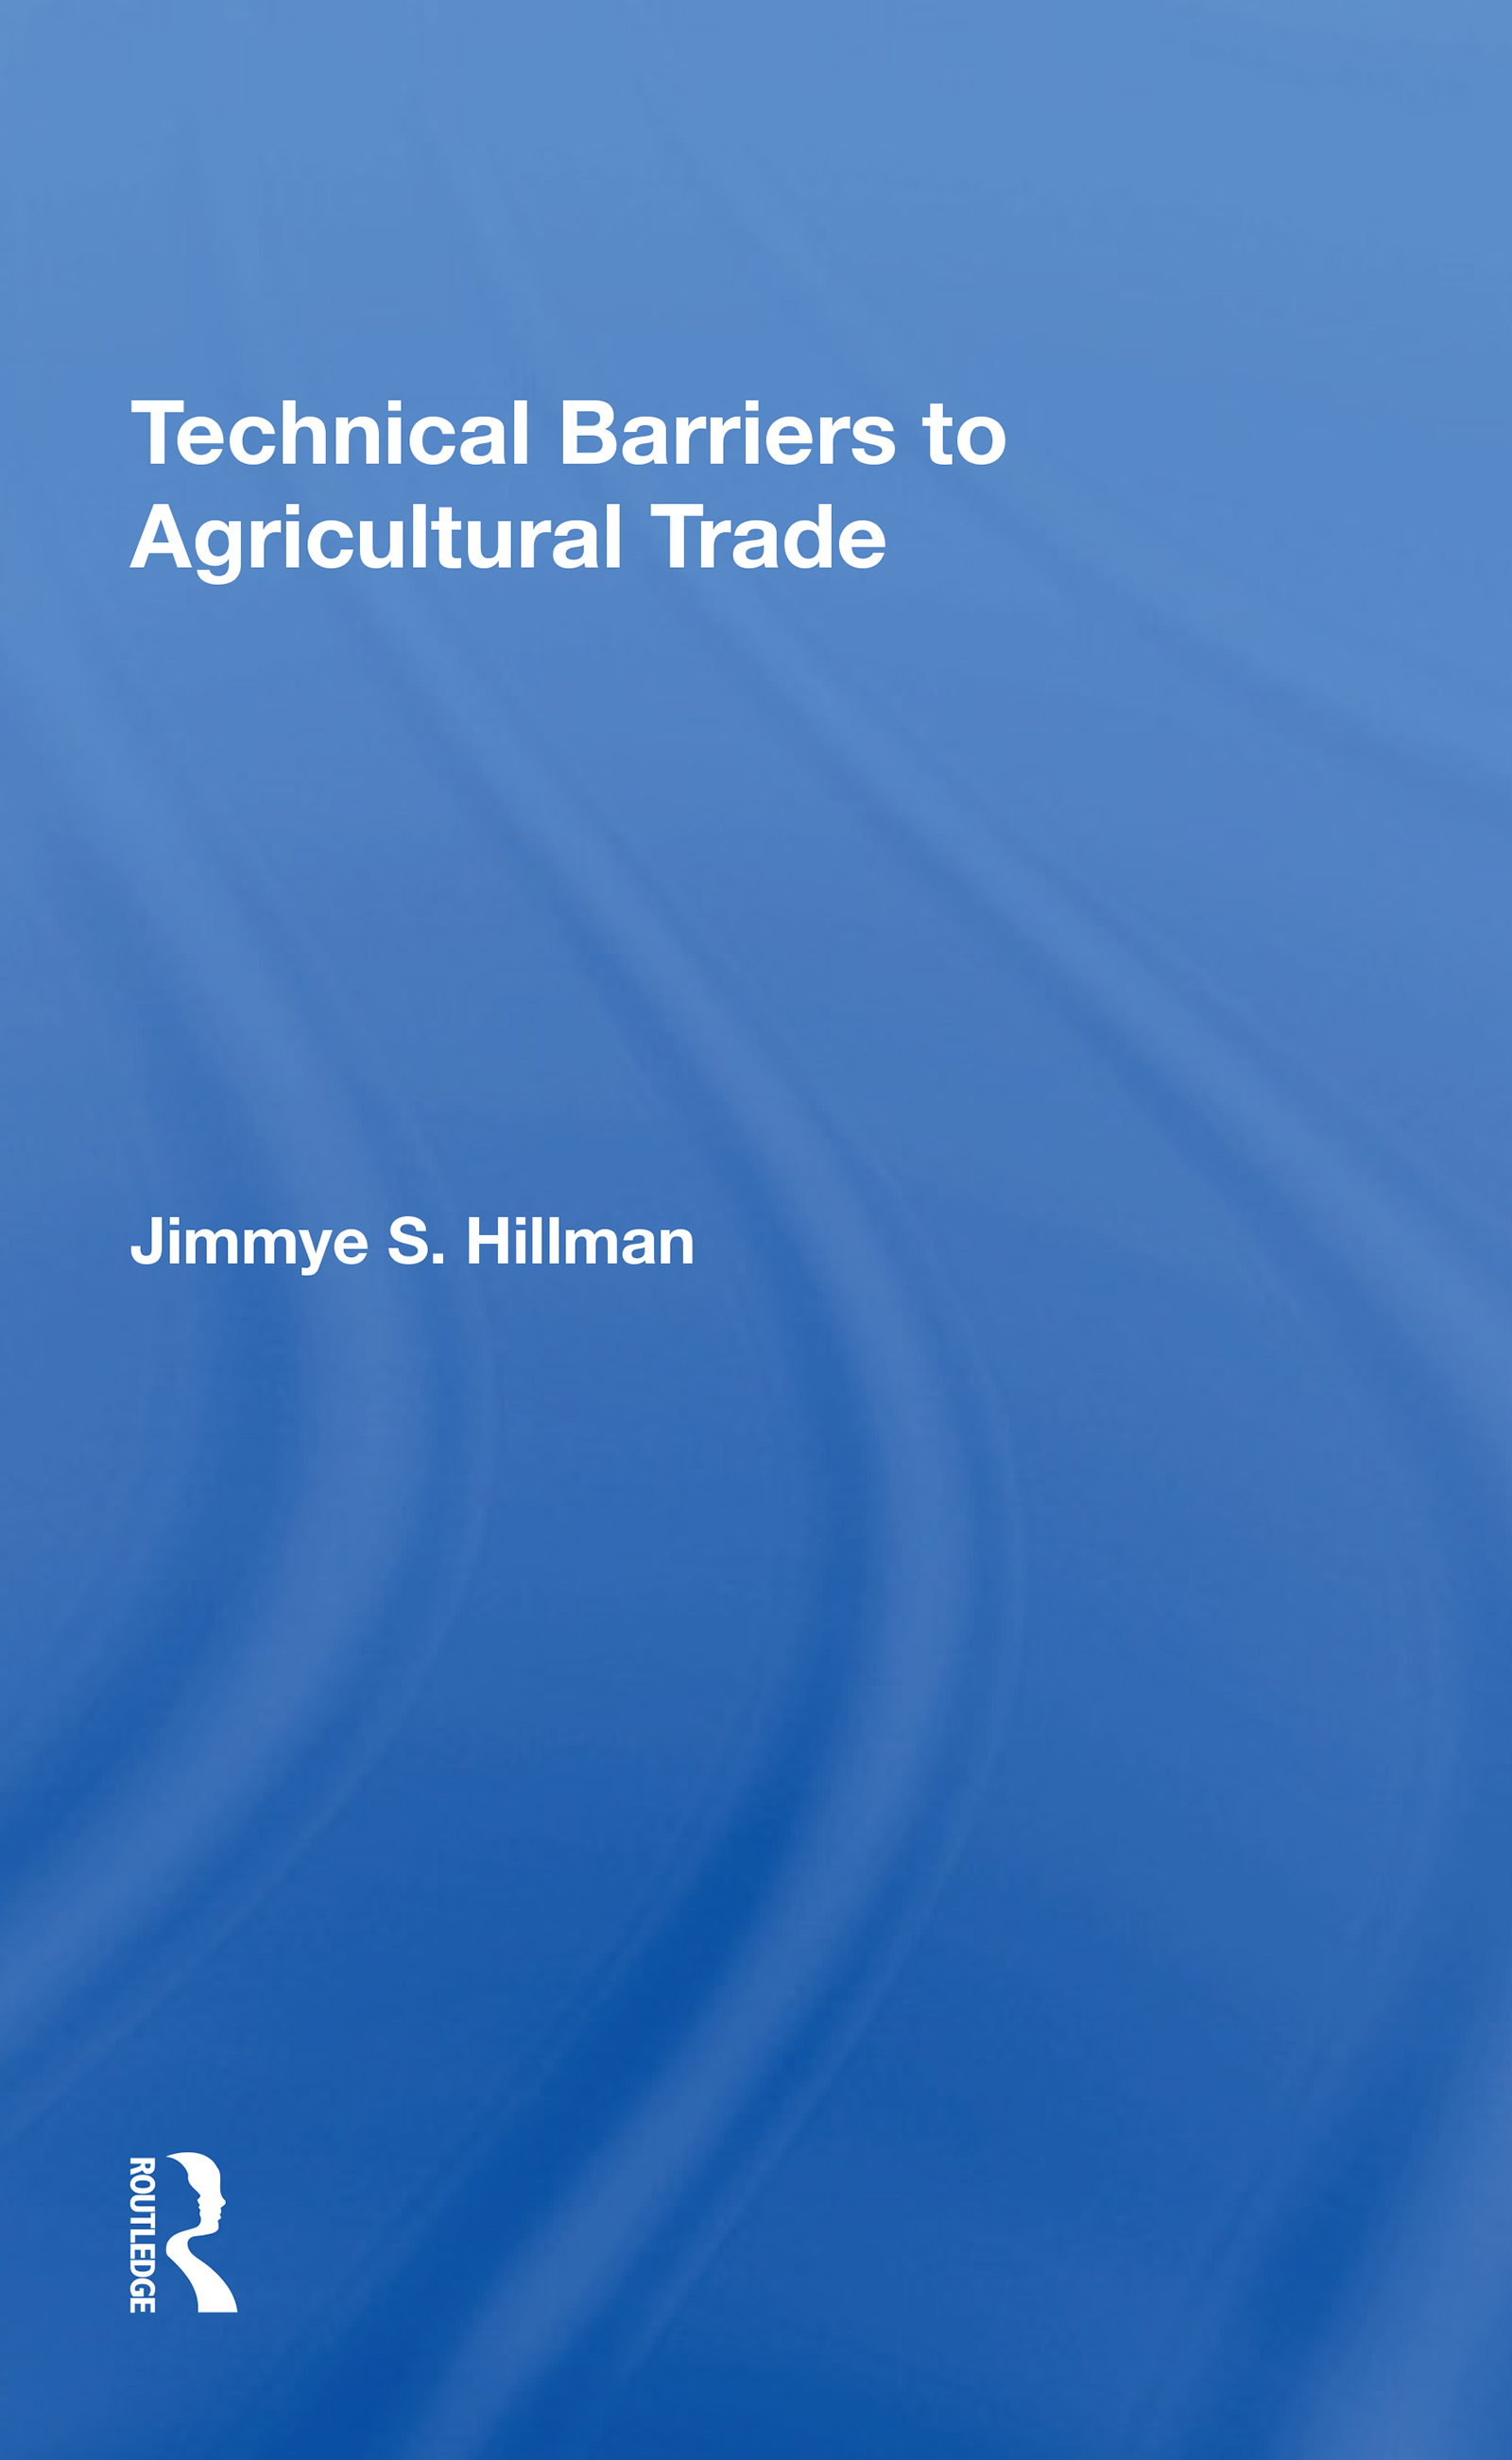 Technical Barriers To Agricultural Trade